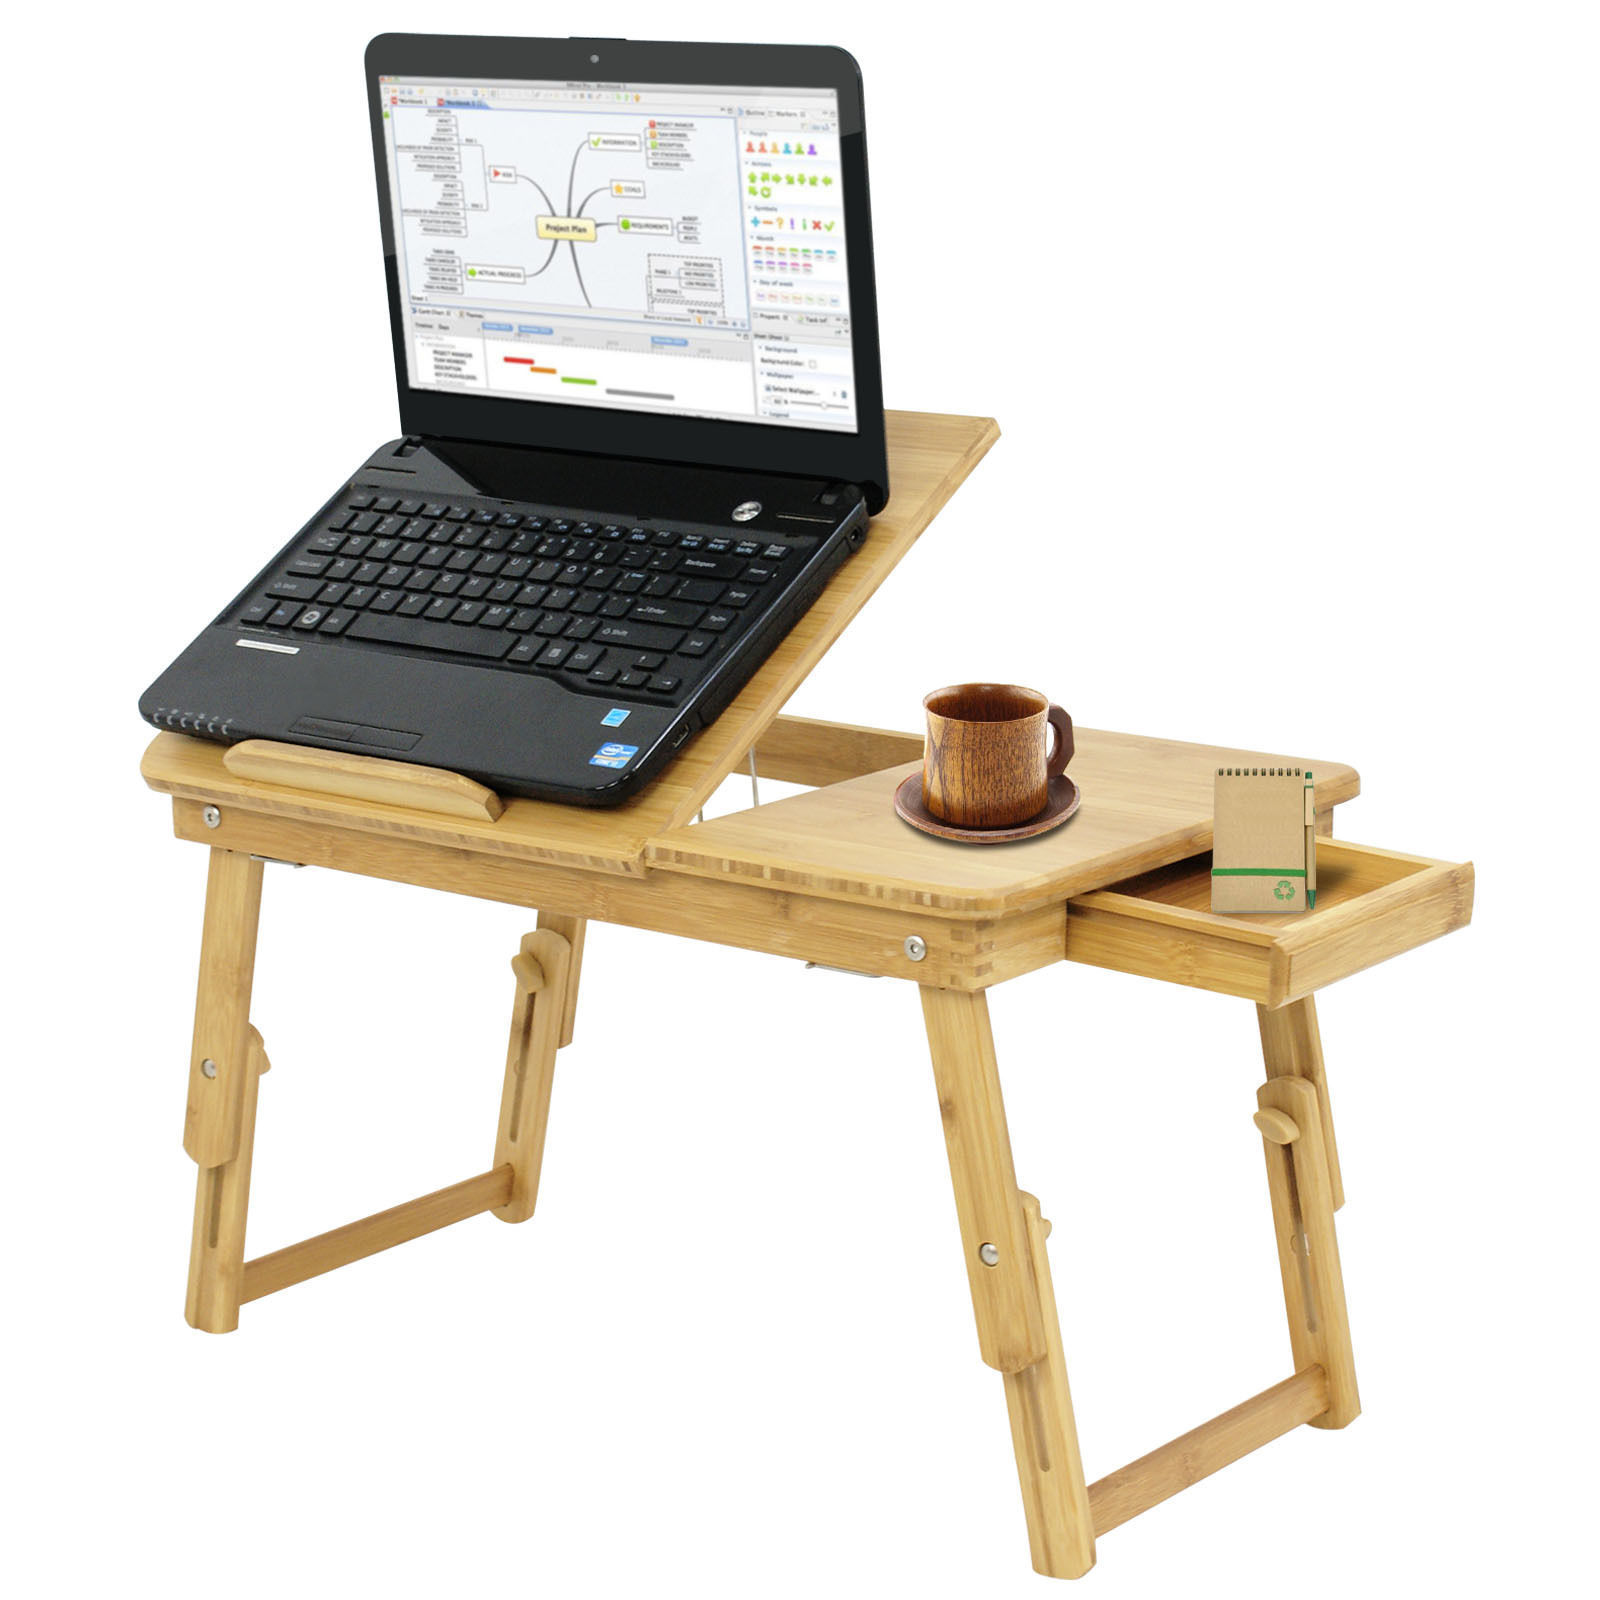 Zeny Portable Bamboo Laptop Desk Table Folding Breakfast Bed Serving Tray w/ Drawer